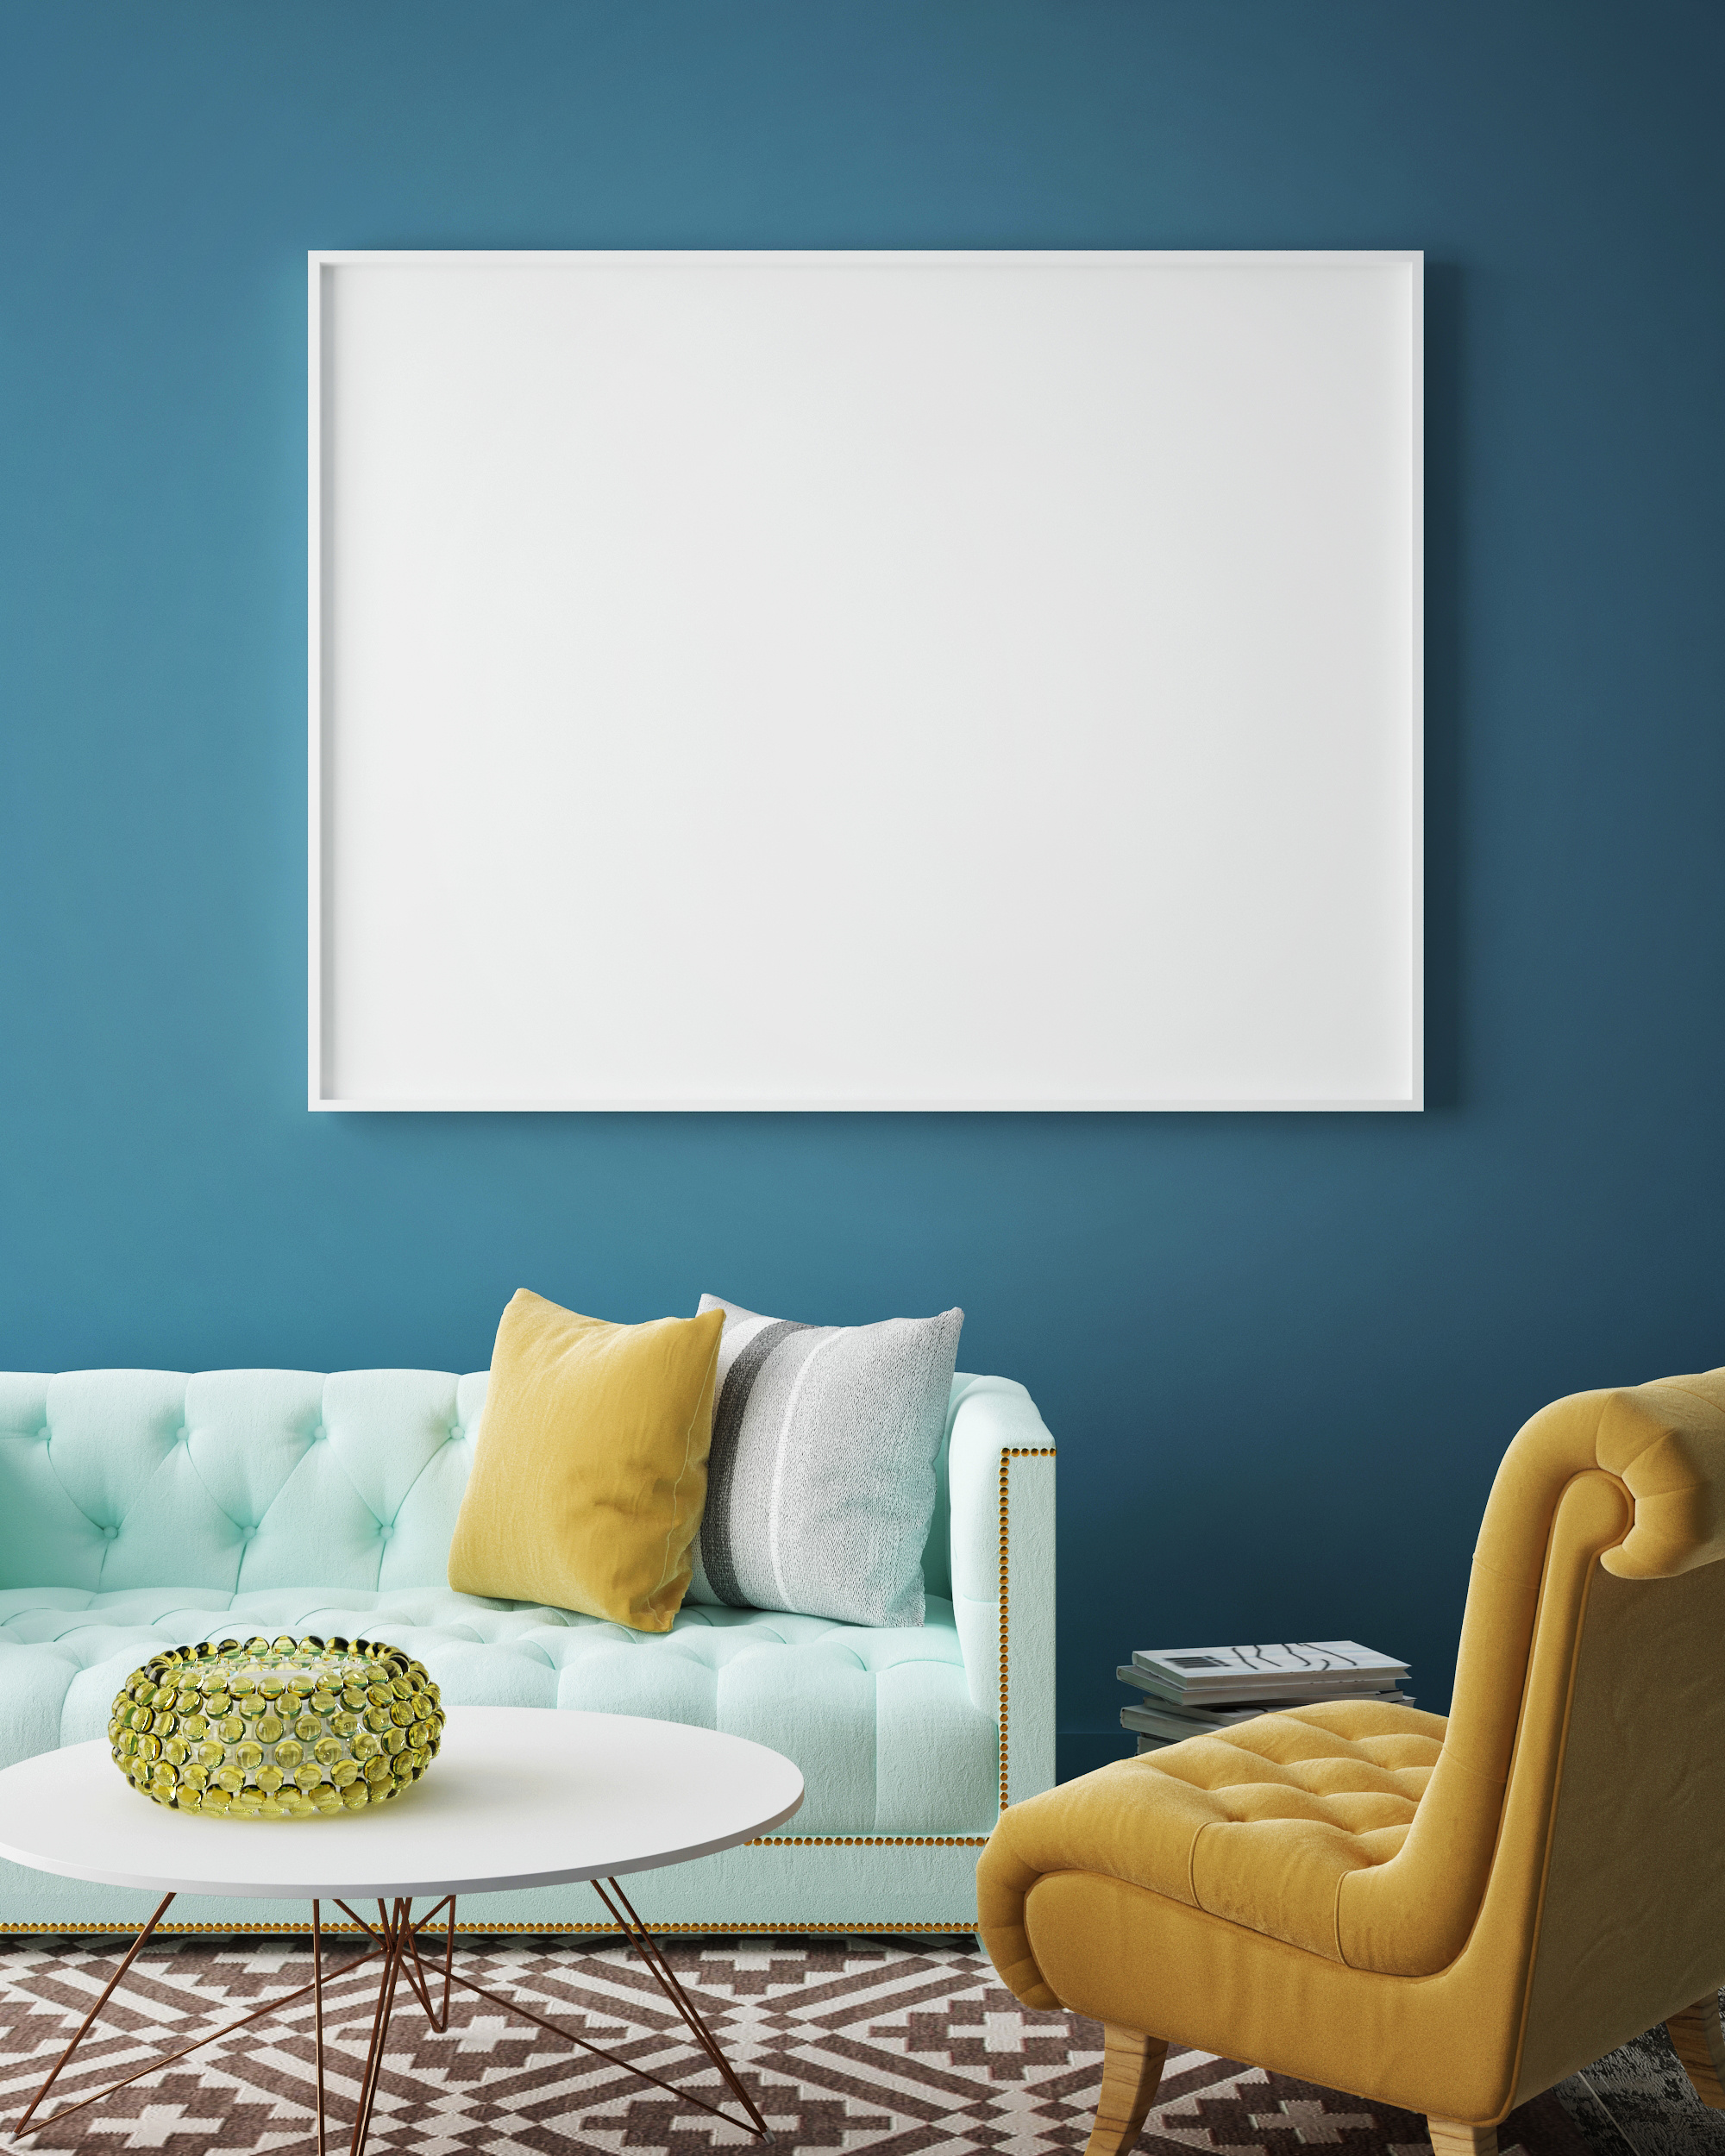 Sofa with blank hanging picture 55829